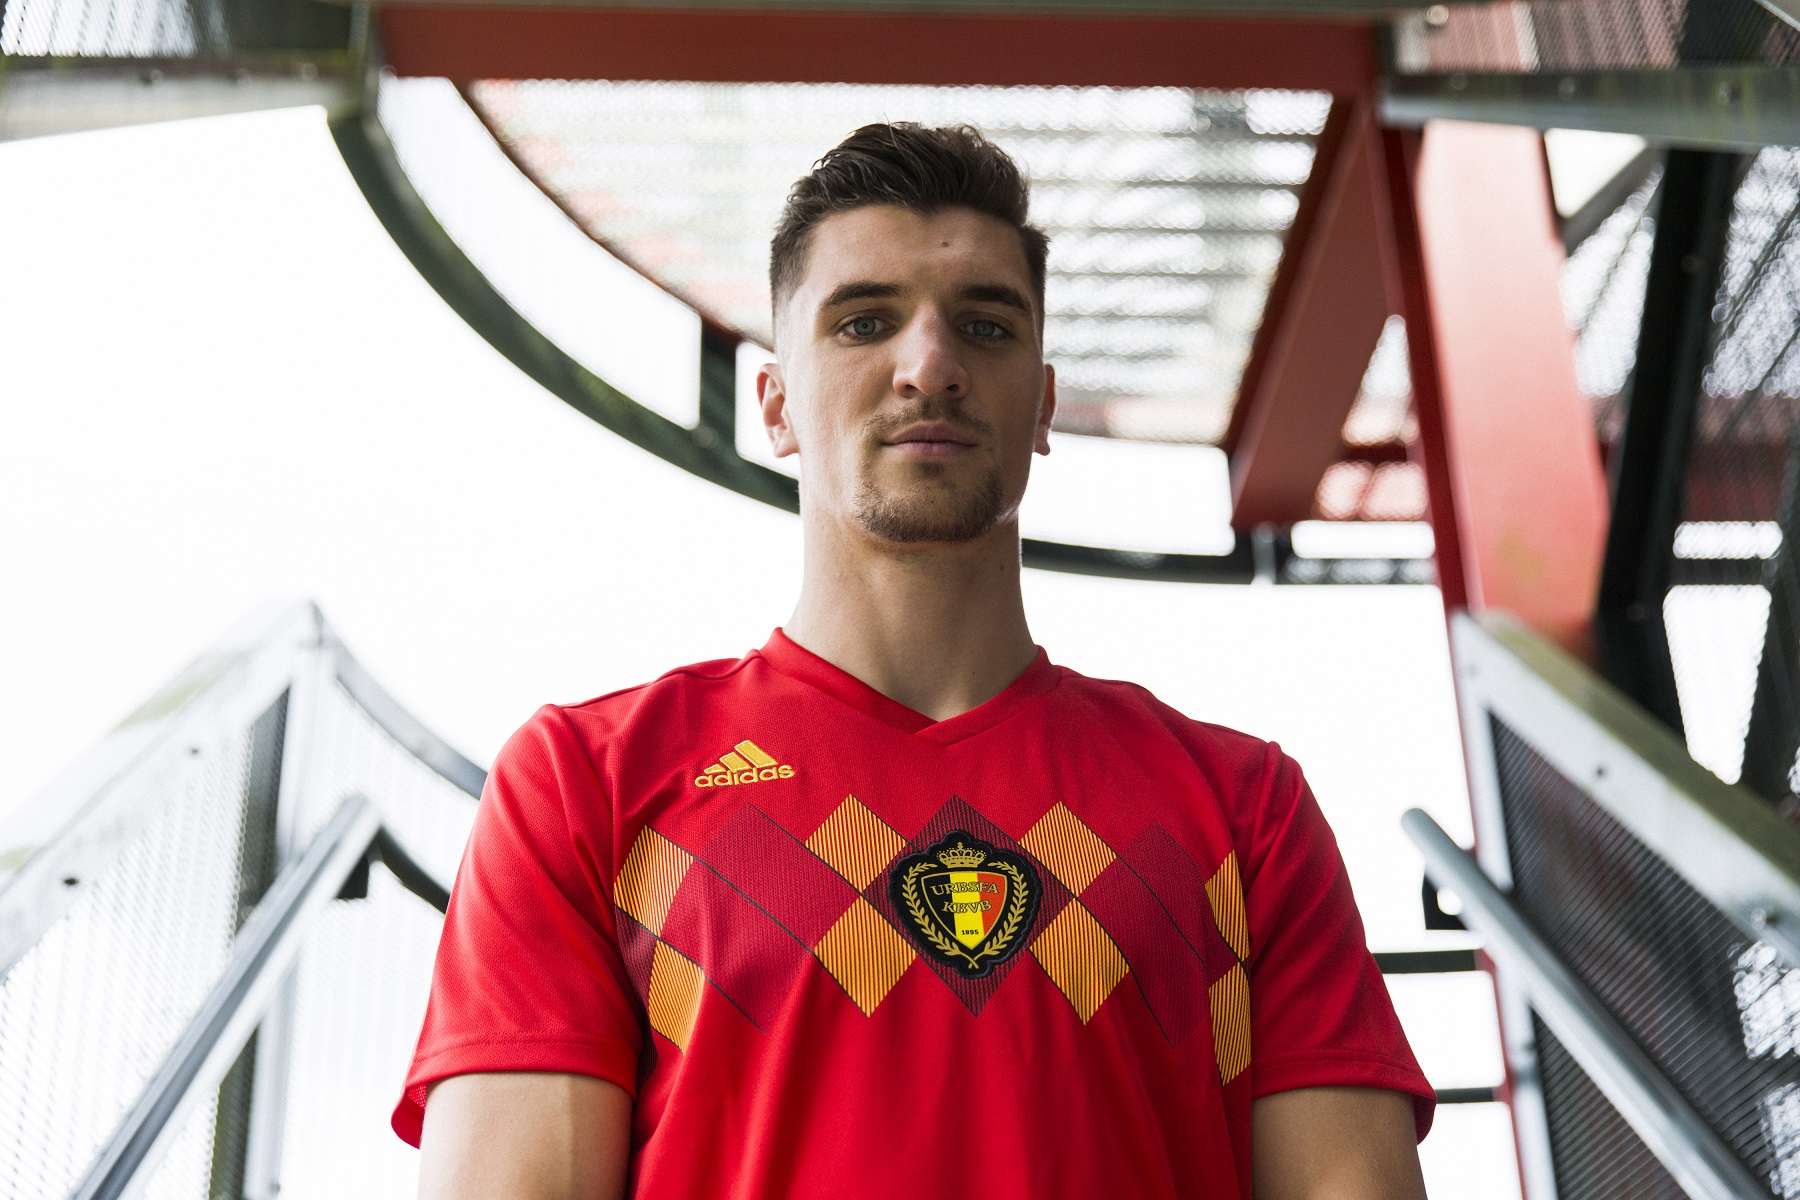 Belgium's home shirt for the 2018 World Cup in Russia